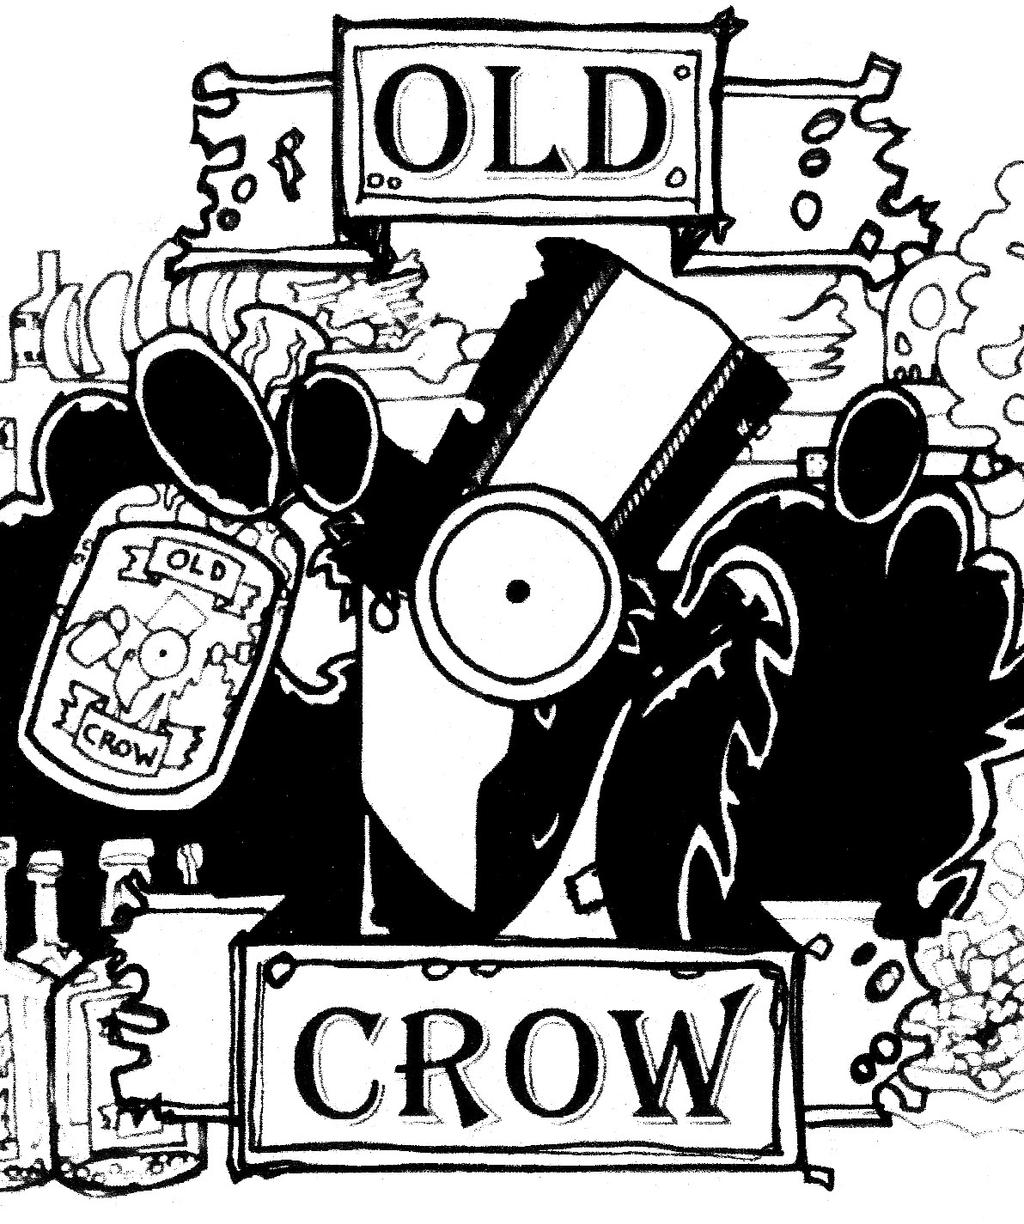 old crow chat rooms Connect to follow old crow medicine show on spotify and start a new ocms playlist with flicker & shine do it now and new tracks from volunteer will.